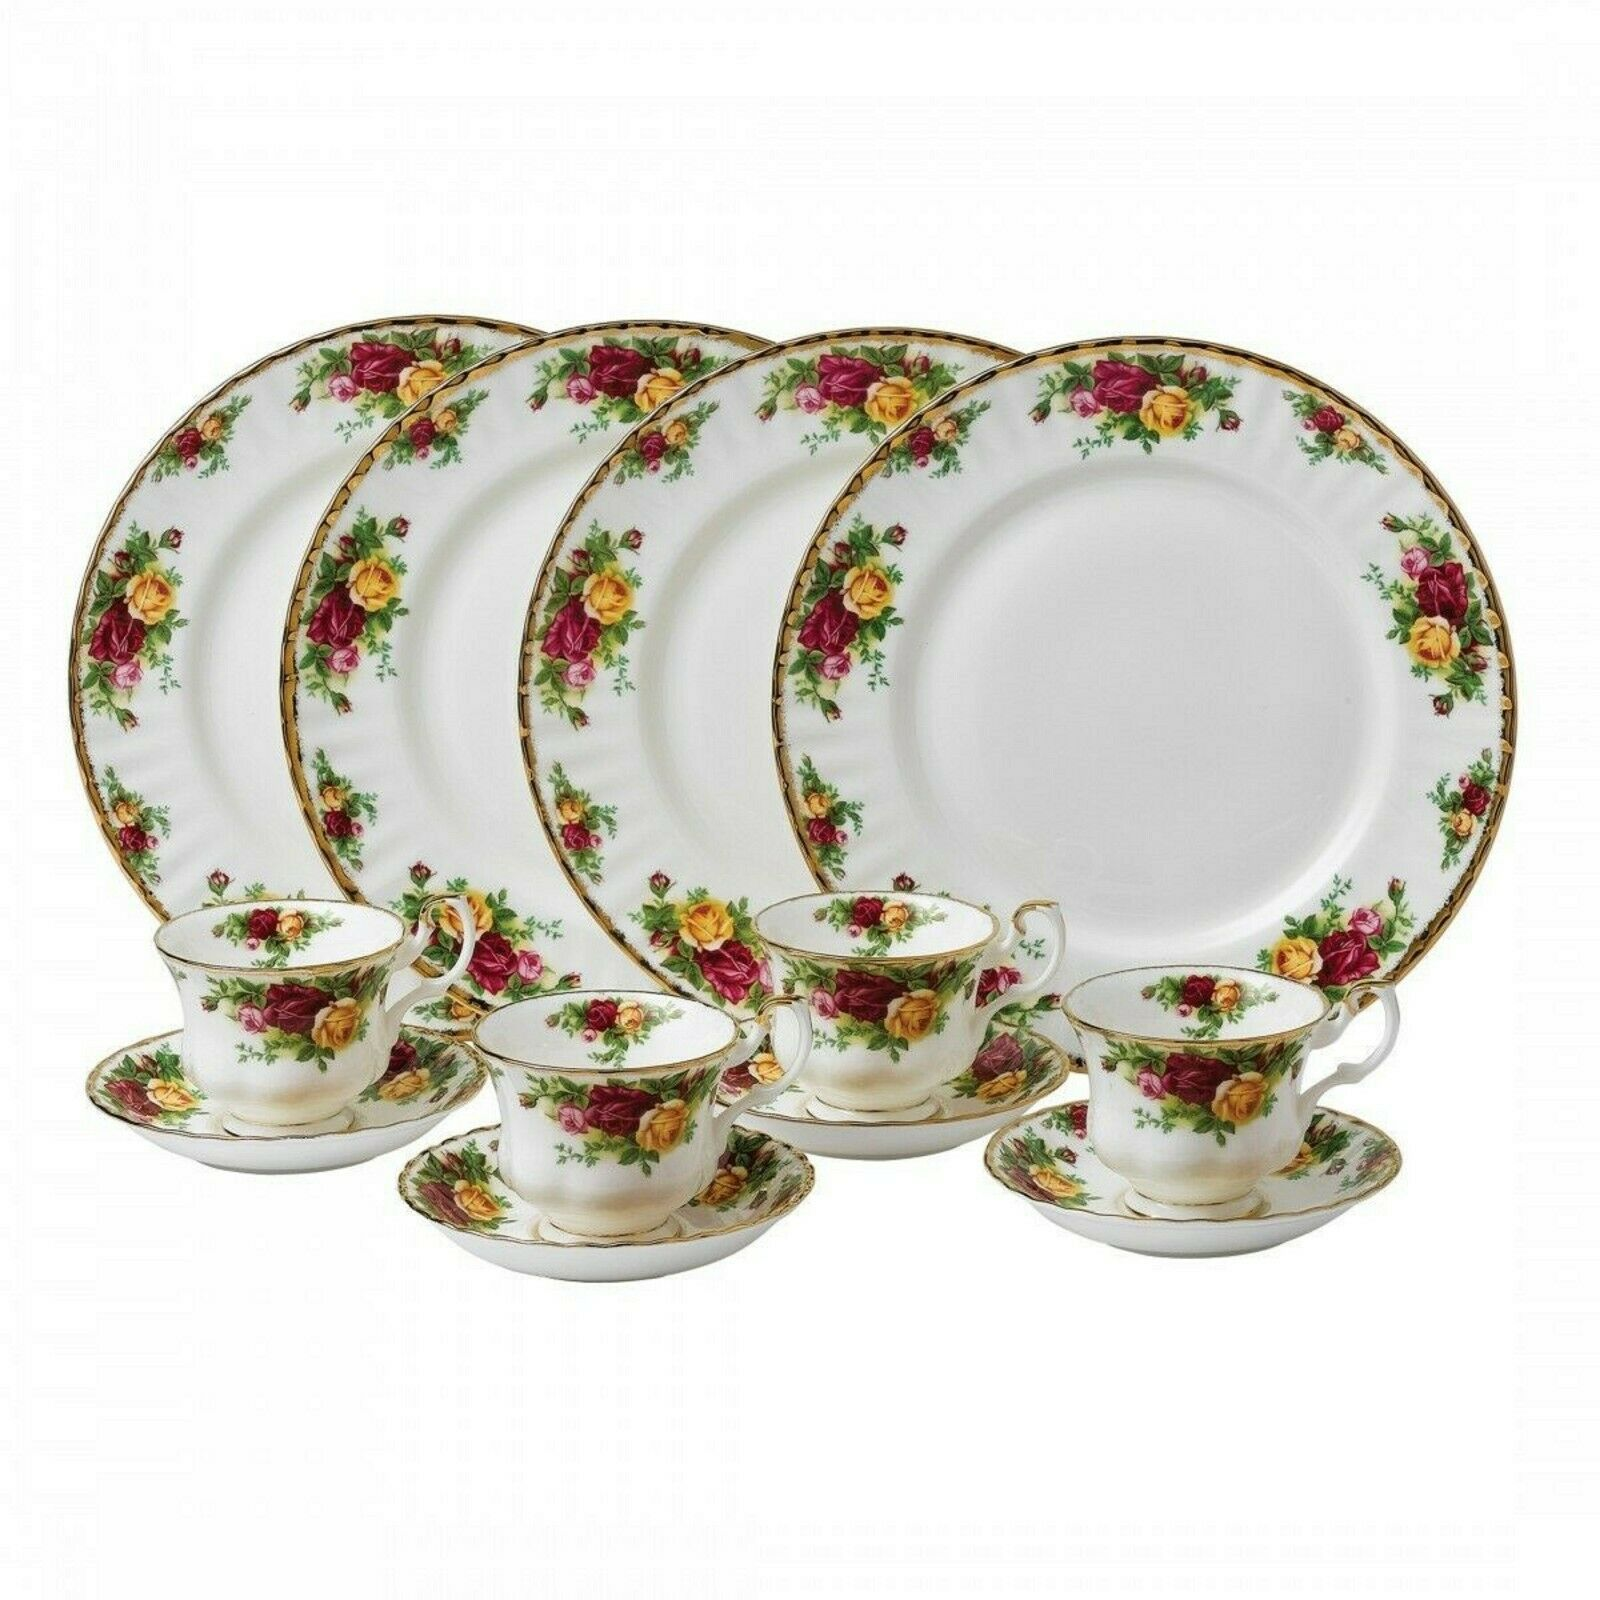 Royal Albert Old Country Roses 12 PC Dinnerware Set Service For 4 Plates NEW - $225.72